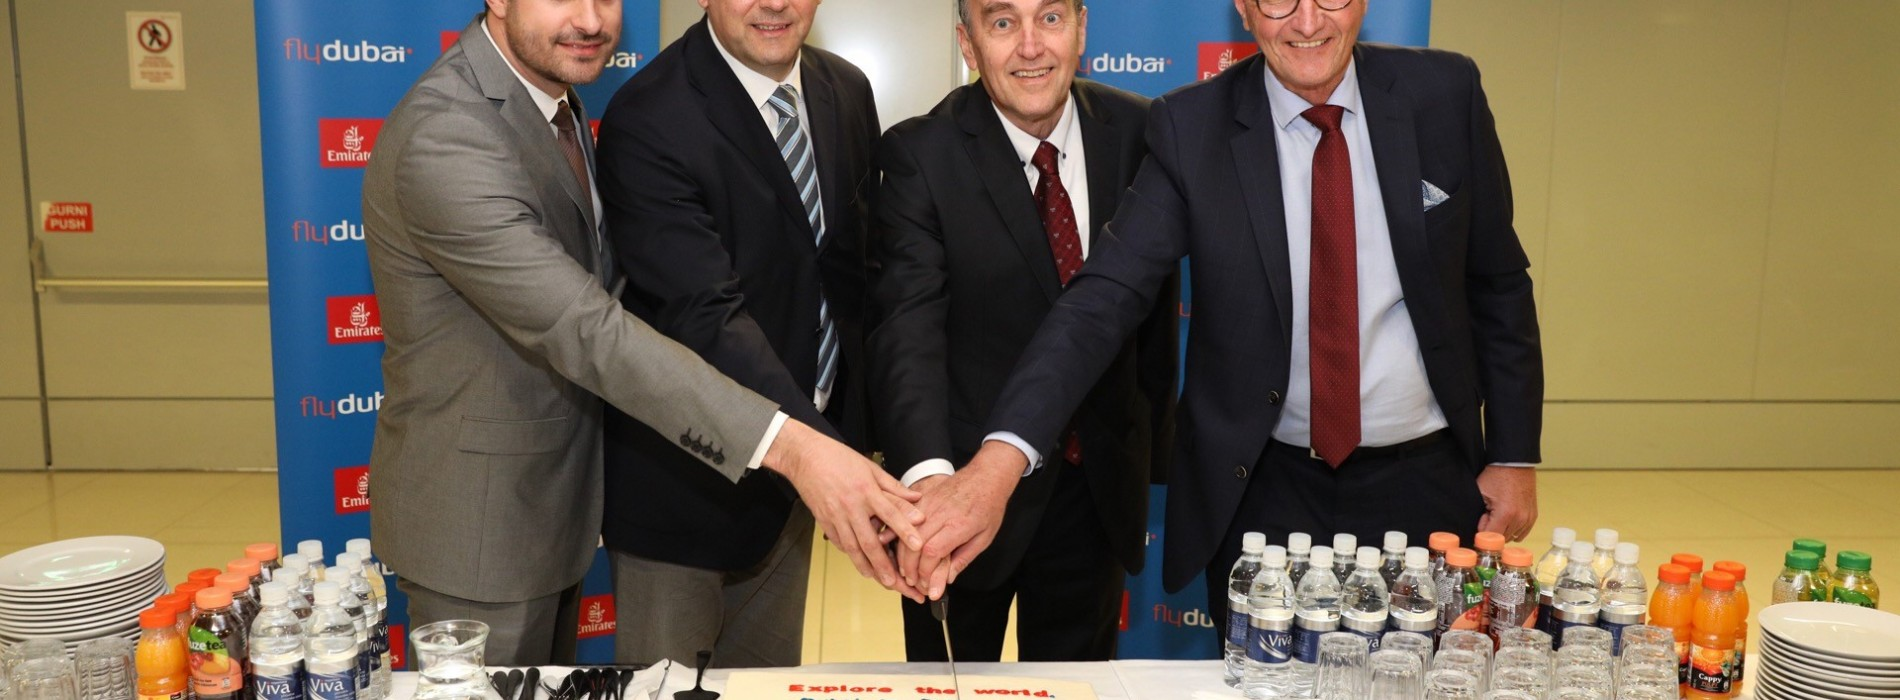 flydubai launches first direct flight from Dubai to Dubrovnik